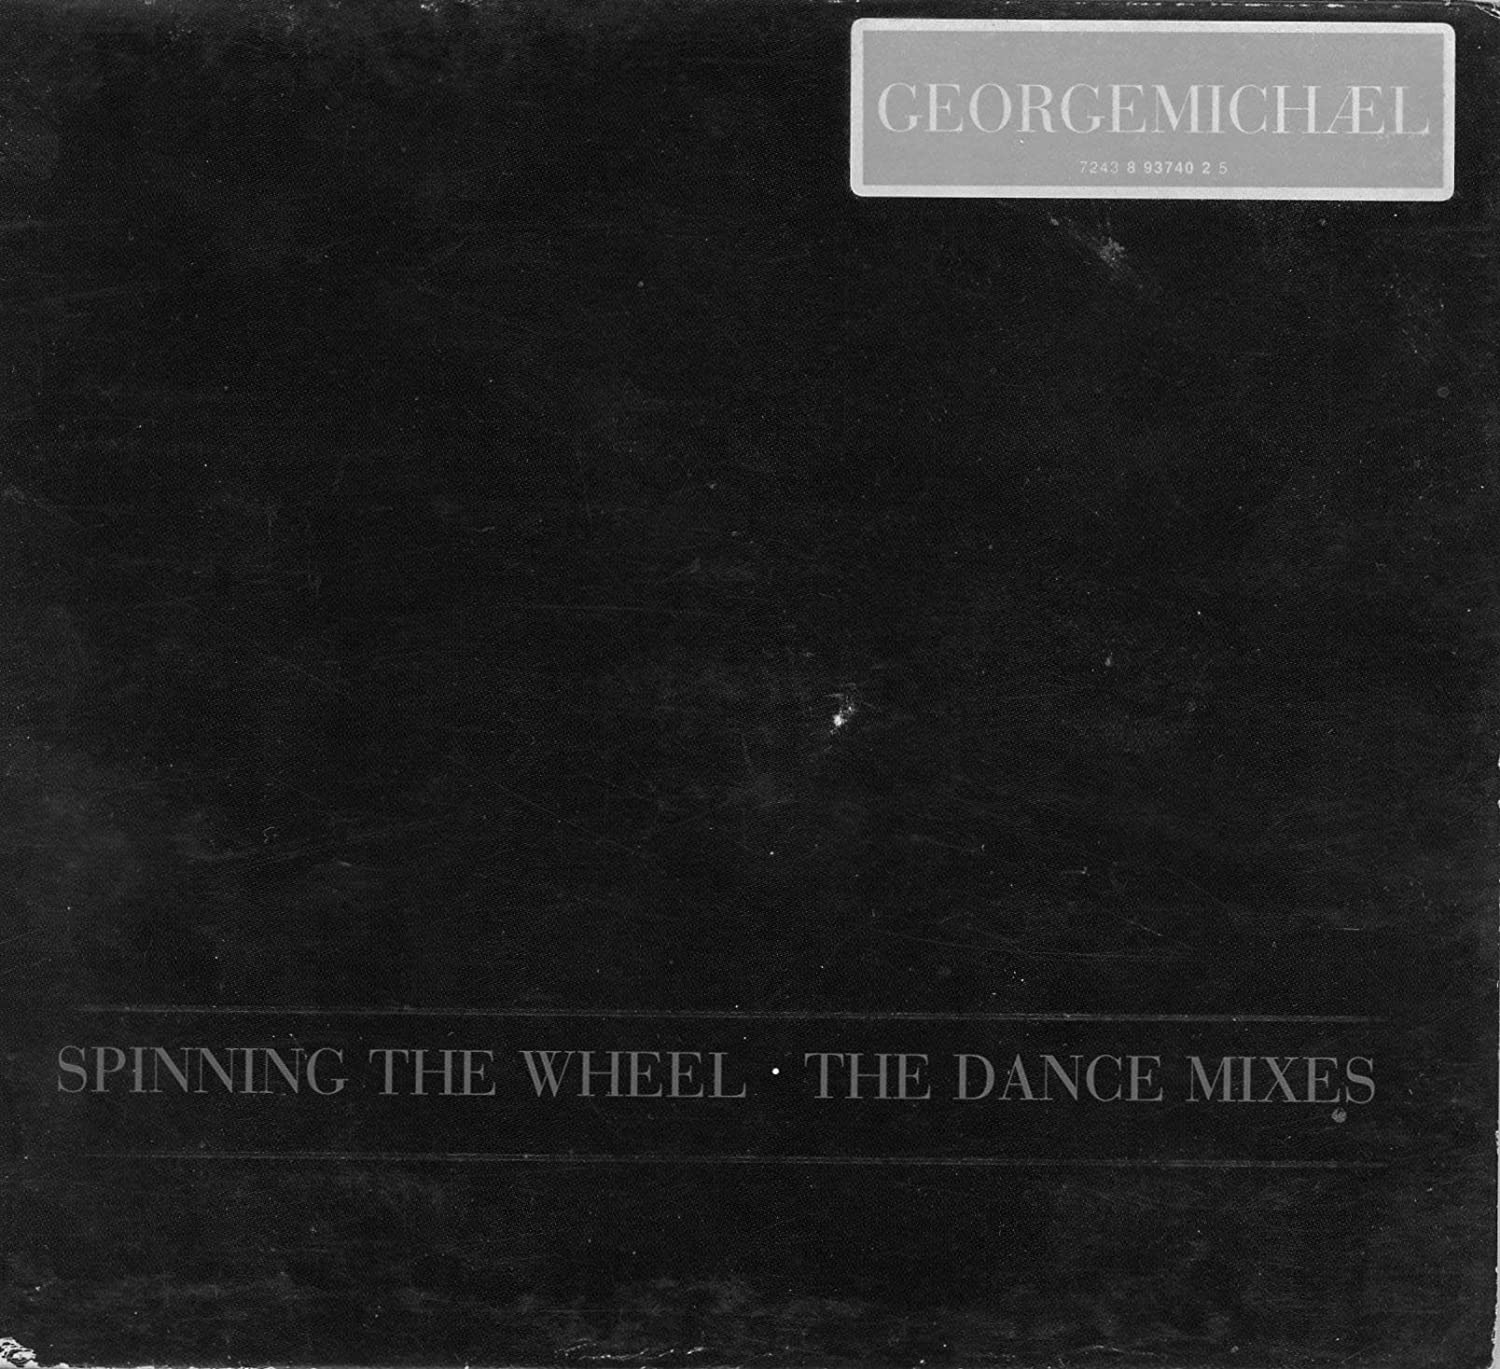 Spinning the Wheel: Michael, George: Amazon.es: Música